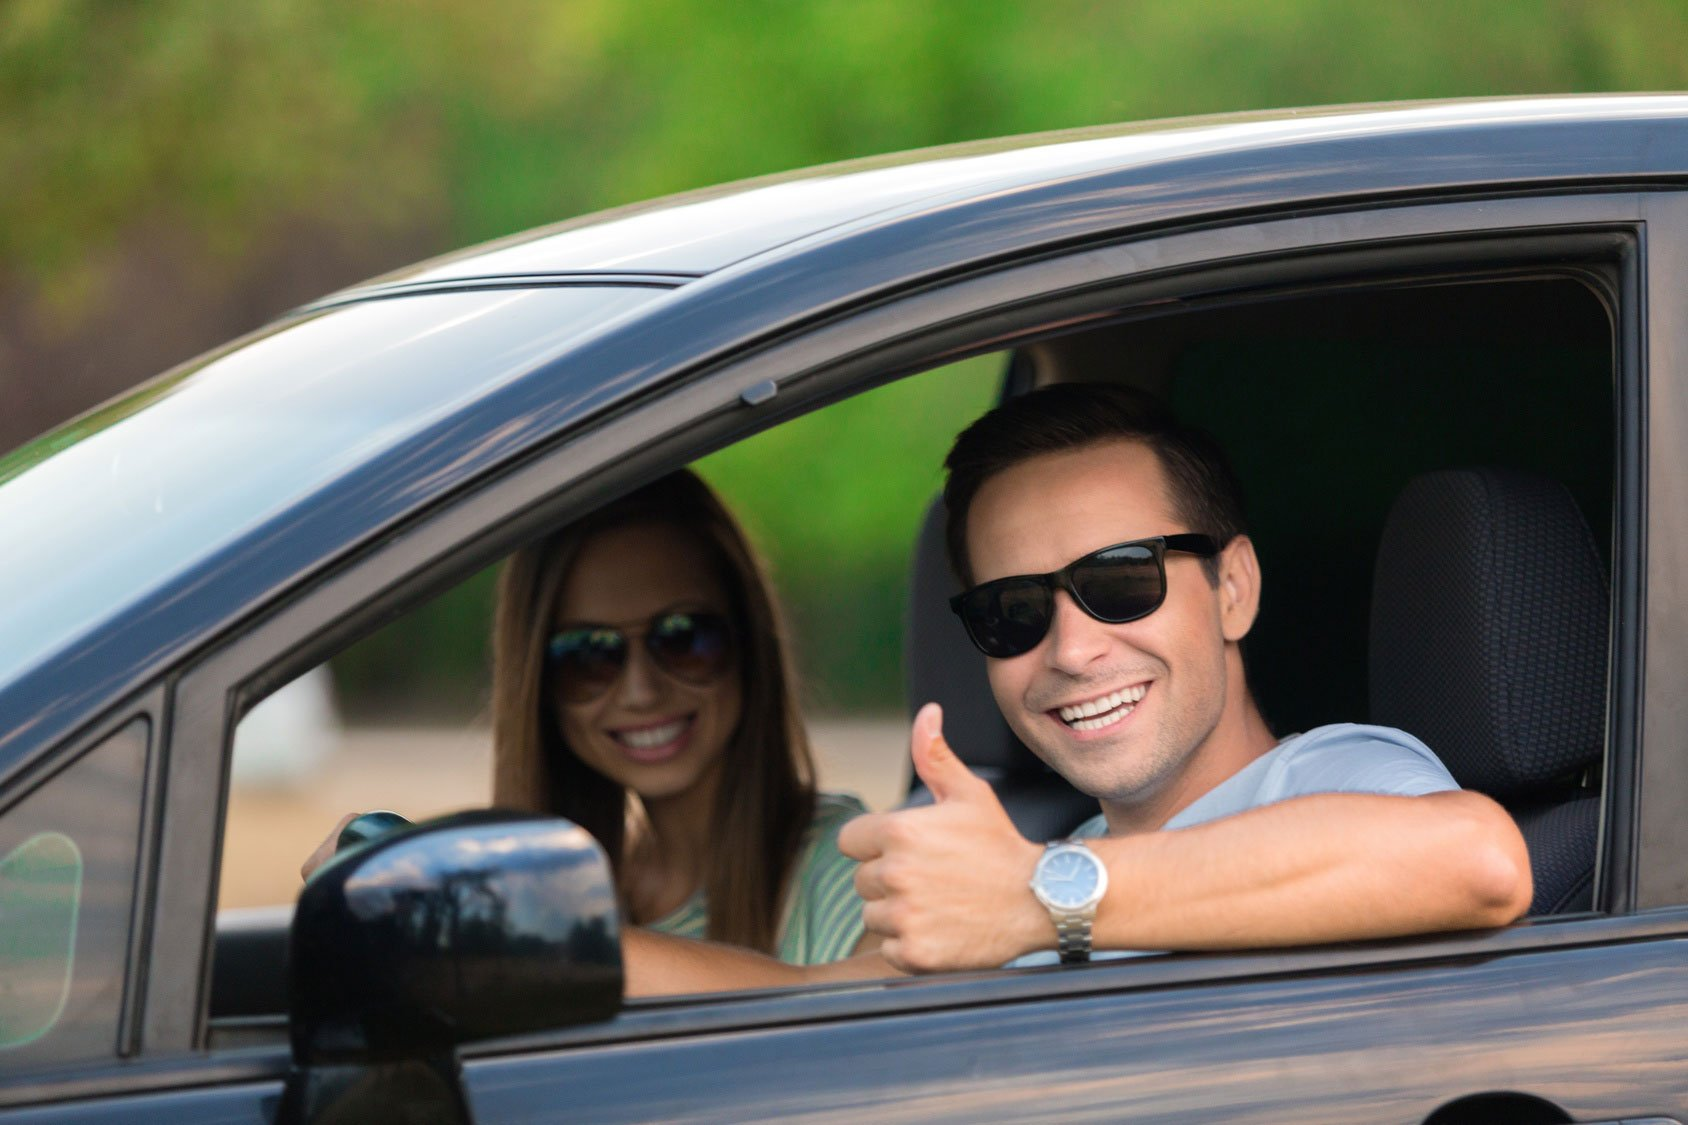 Passengers & Auto Insurance Astoria New York